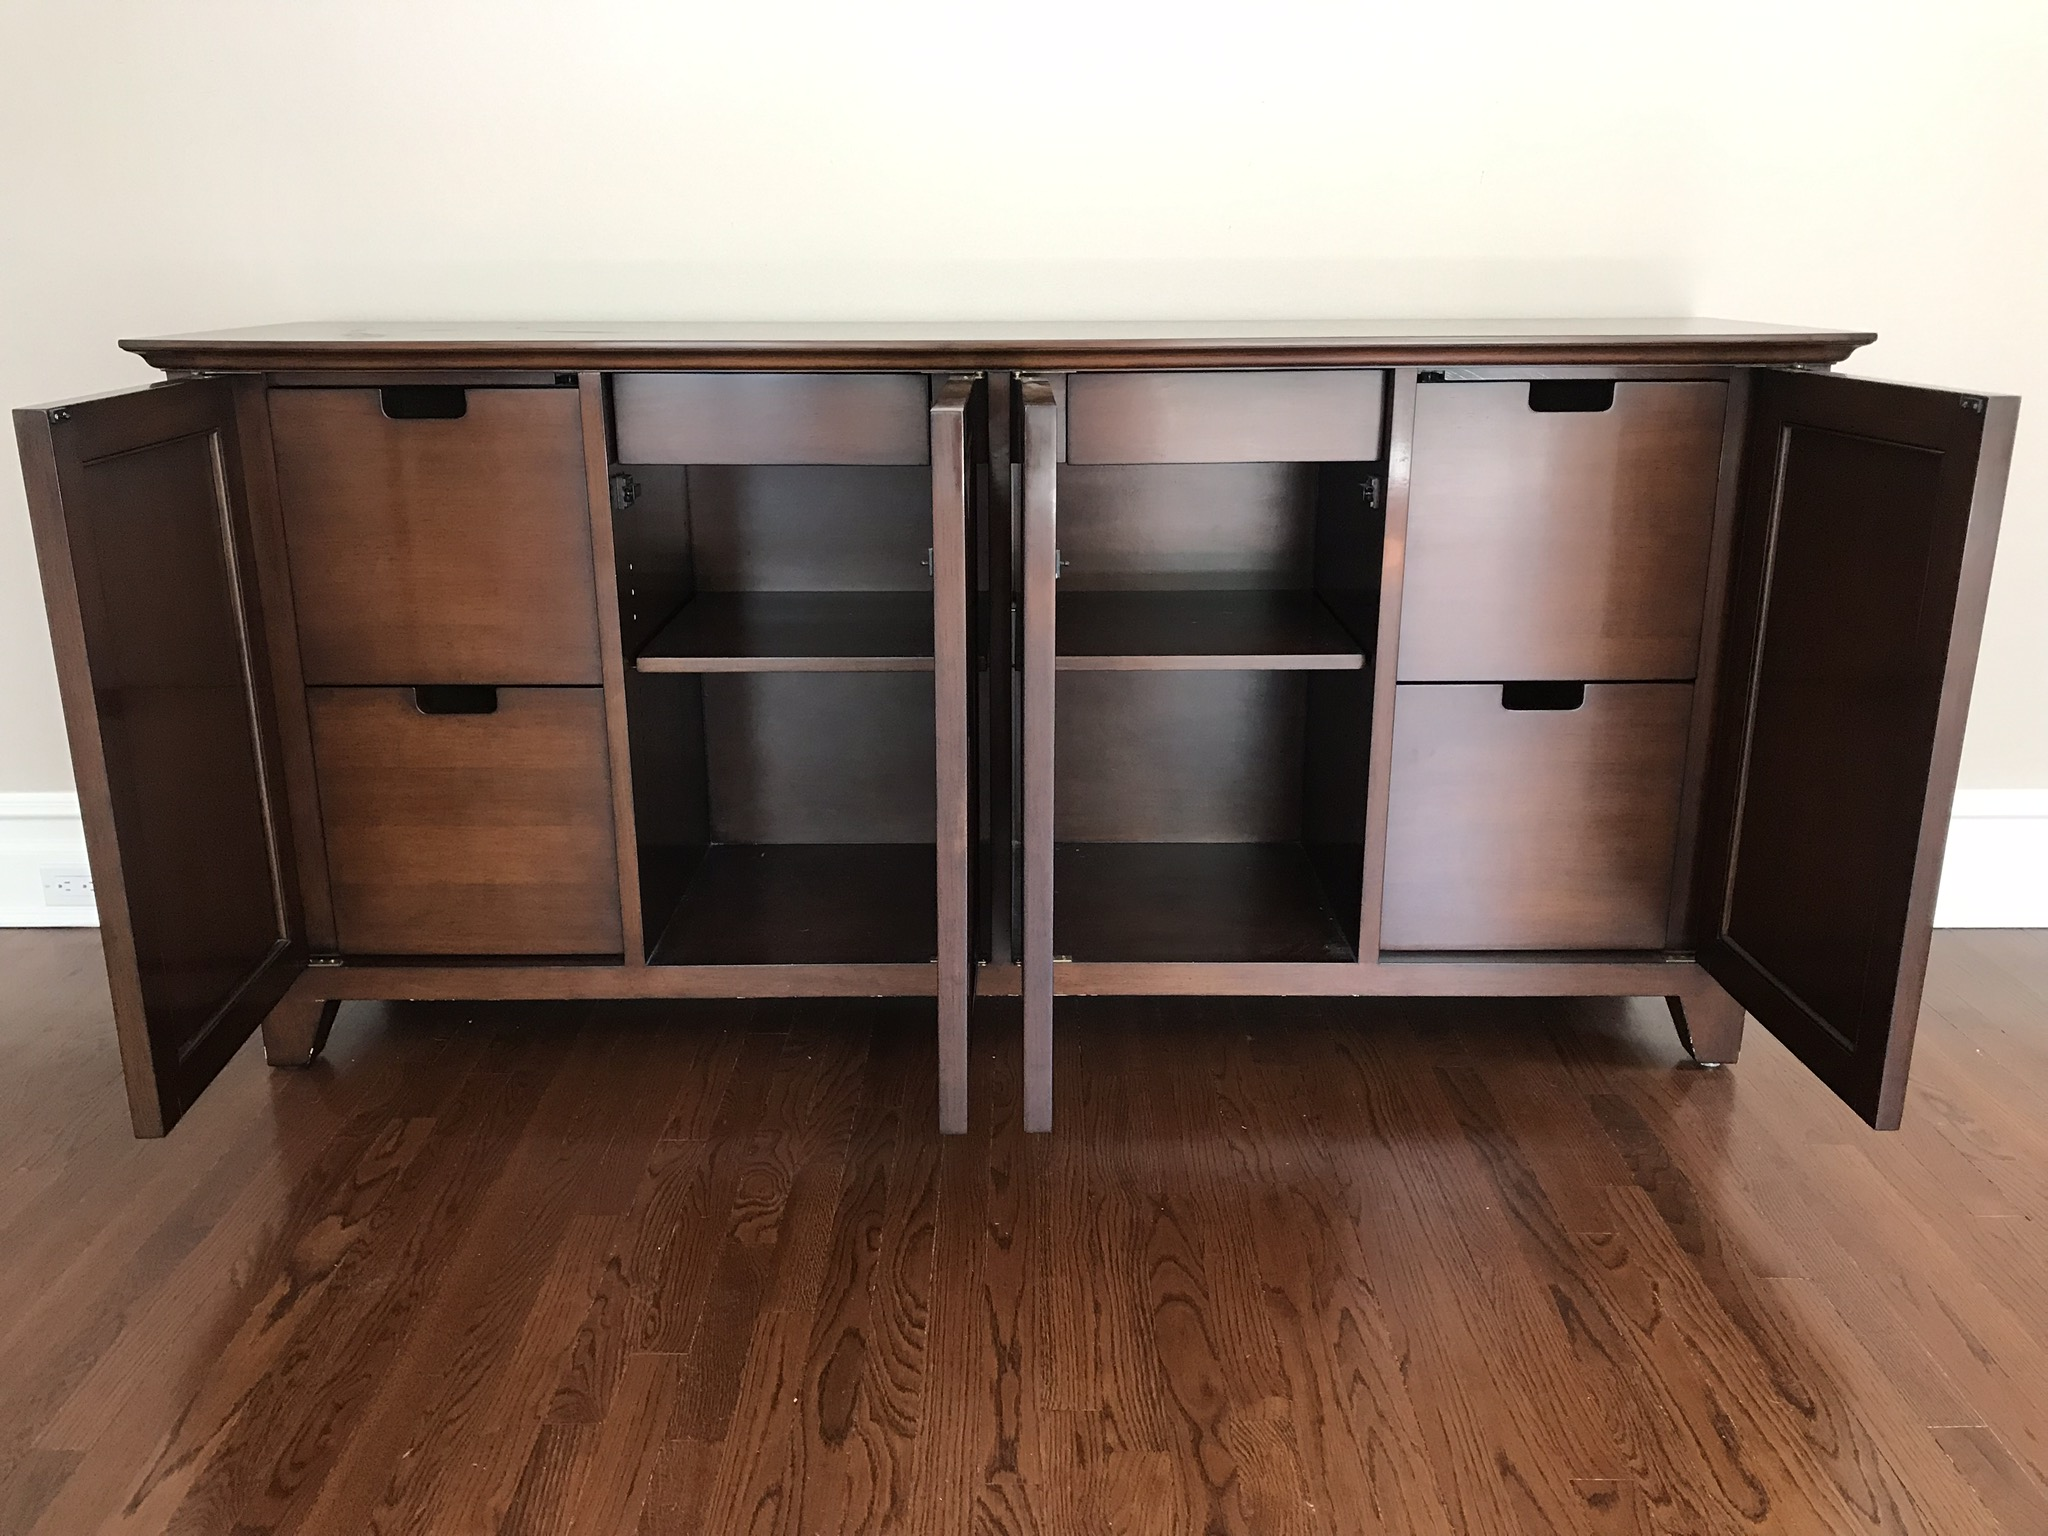 Lovely Mirrored Nancy Corzine Home Office Credenza or Console